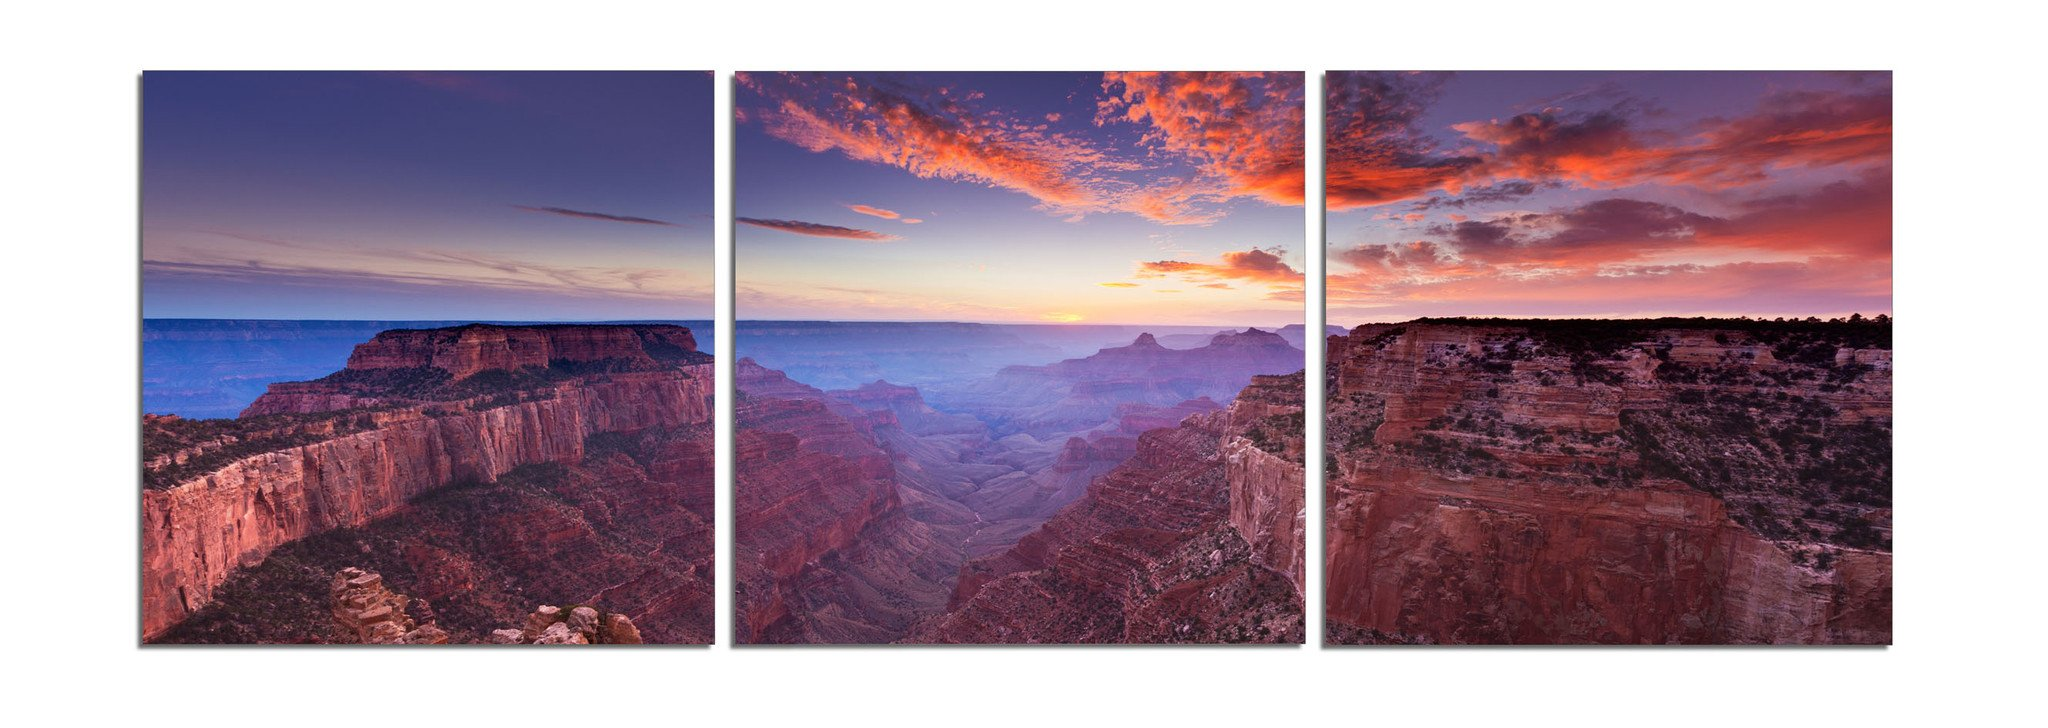 Elementem: Big Photography Prints - Canvas 3 Frame Art: Grand Canyon at Sunset - 5 Feet Wide 3 20 x 20 in. Wall Decor Triptych in Purple, Brown (Office, Home, Living, Dining Room Decor)